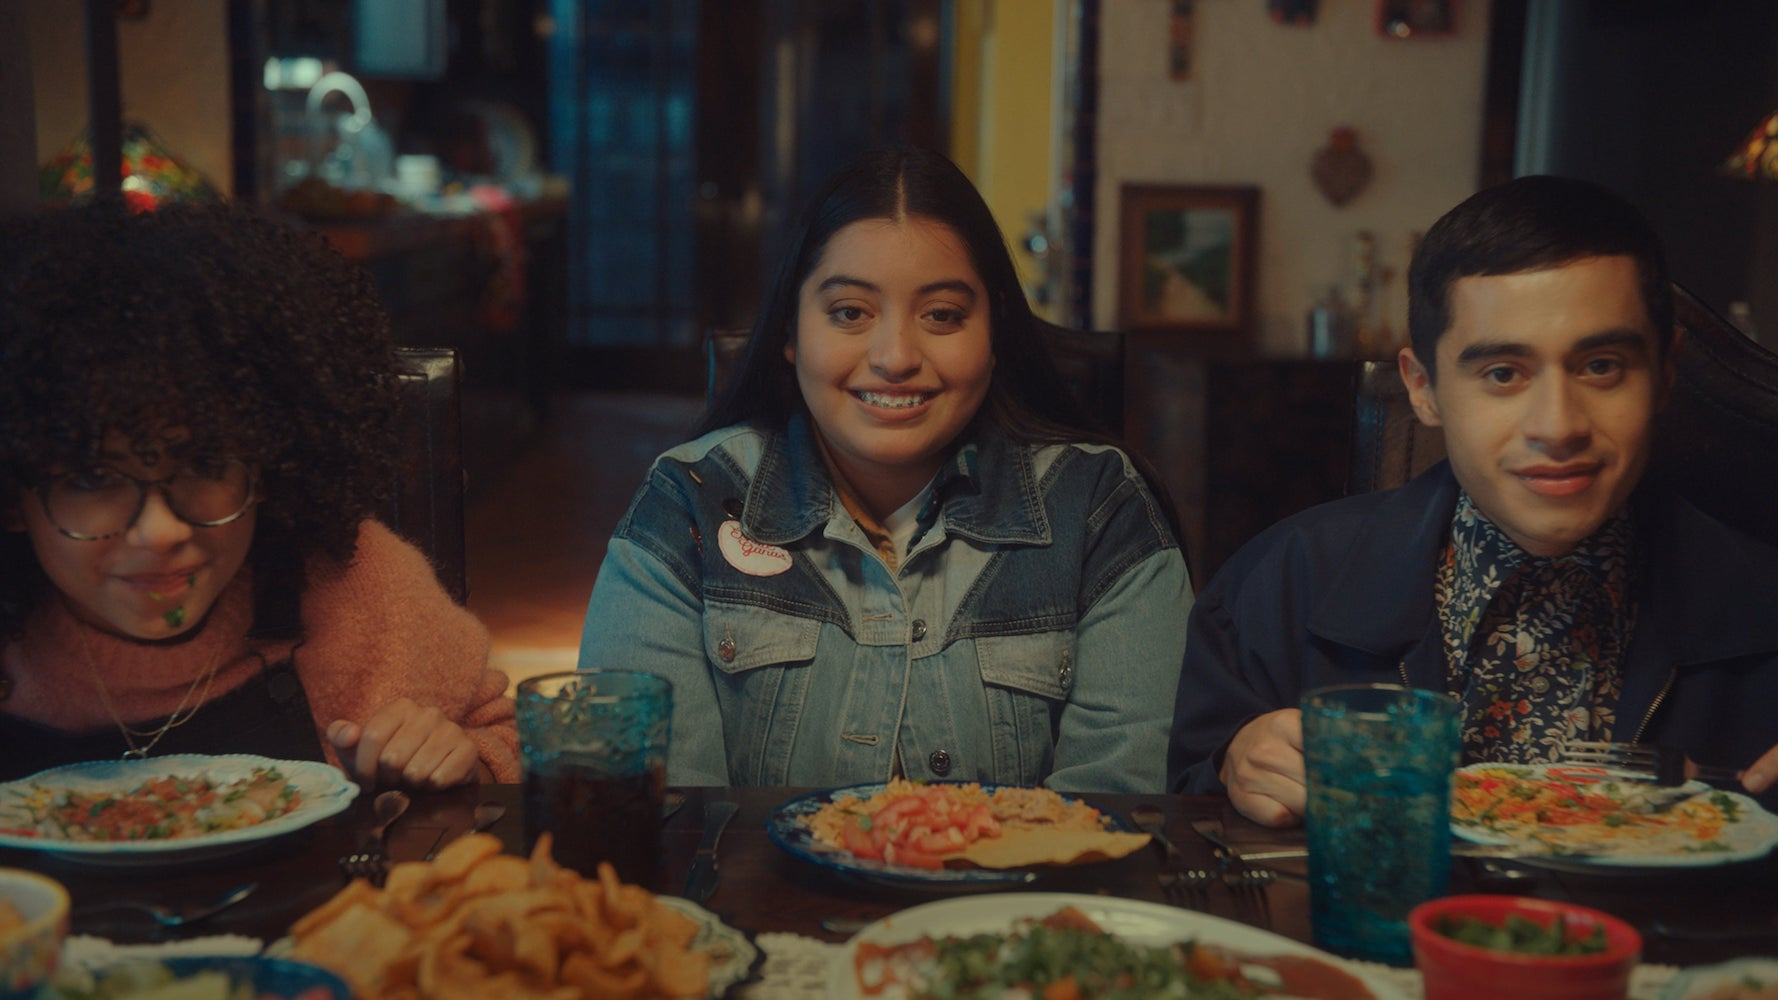 """(L-R): Olivia Sullivent as Dora, Keyla Monterroso Mejia as Val Garcia and Gilberto Ortiz as Jimmy in Disney's """"LAUNCHPAD"""" Season One short, """"GROWING FANGS,"""" Written and Directed by Ann Marie Pace. Photo courtesy of Disney. © 2021 Disney Enterprises, Inc. All Rights Reserved."""